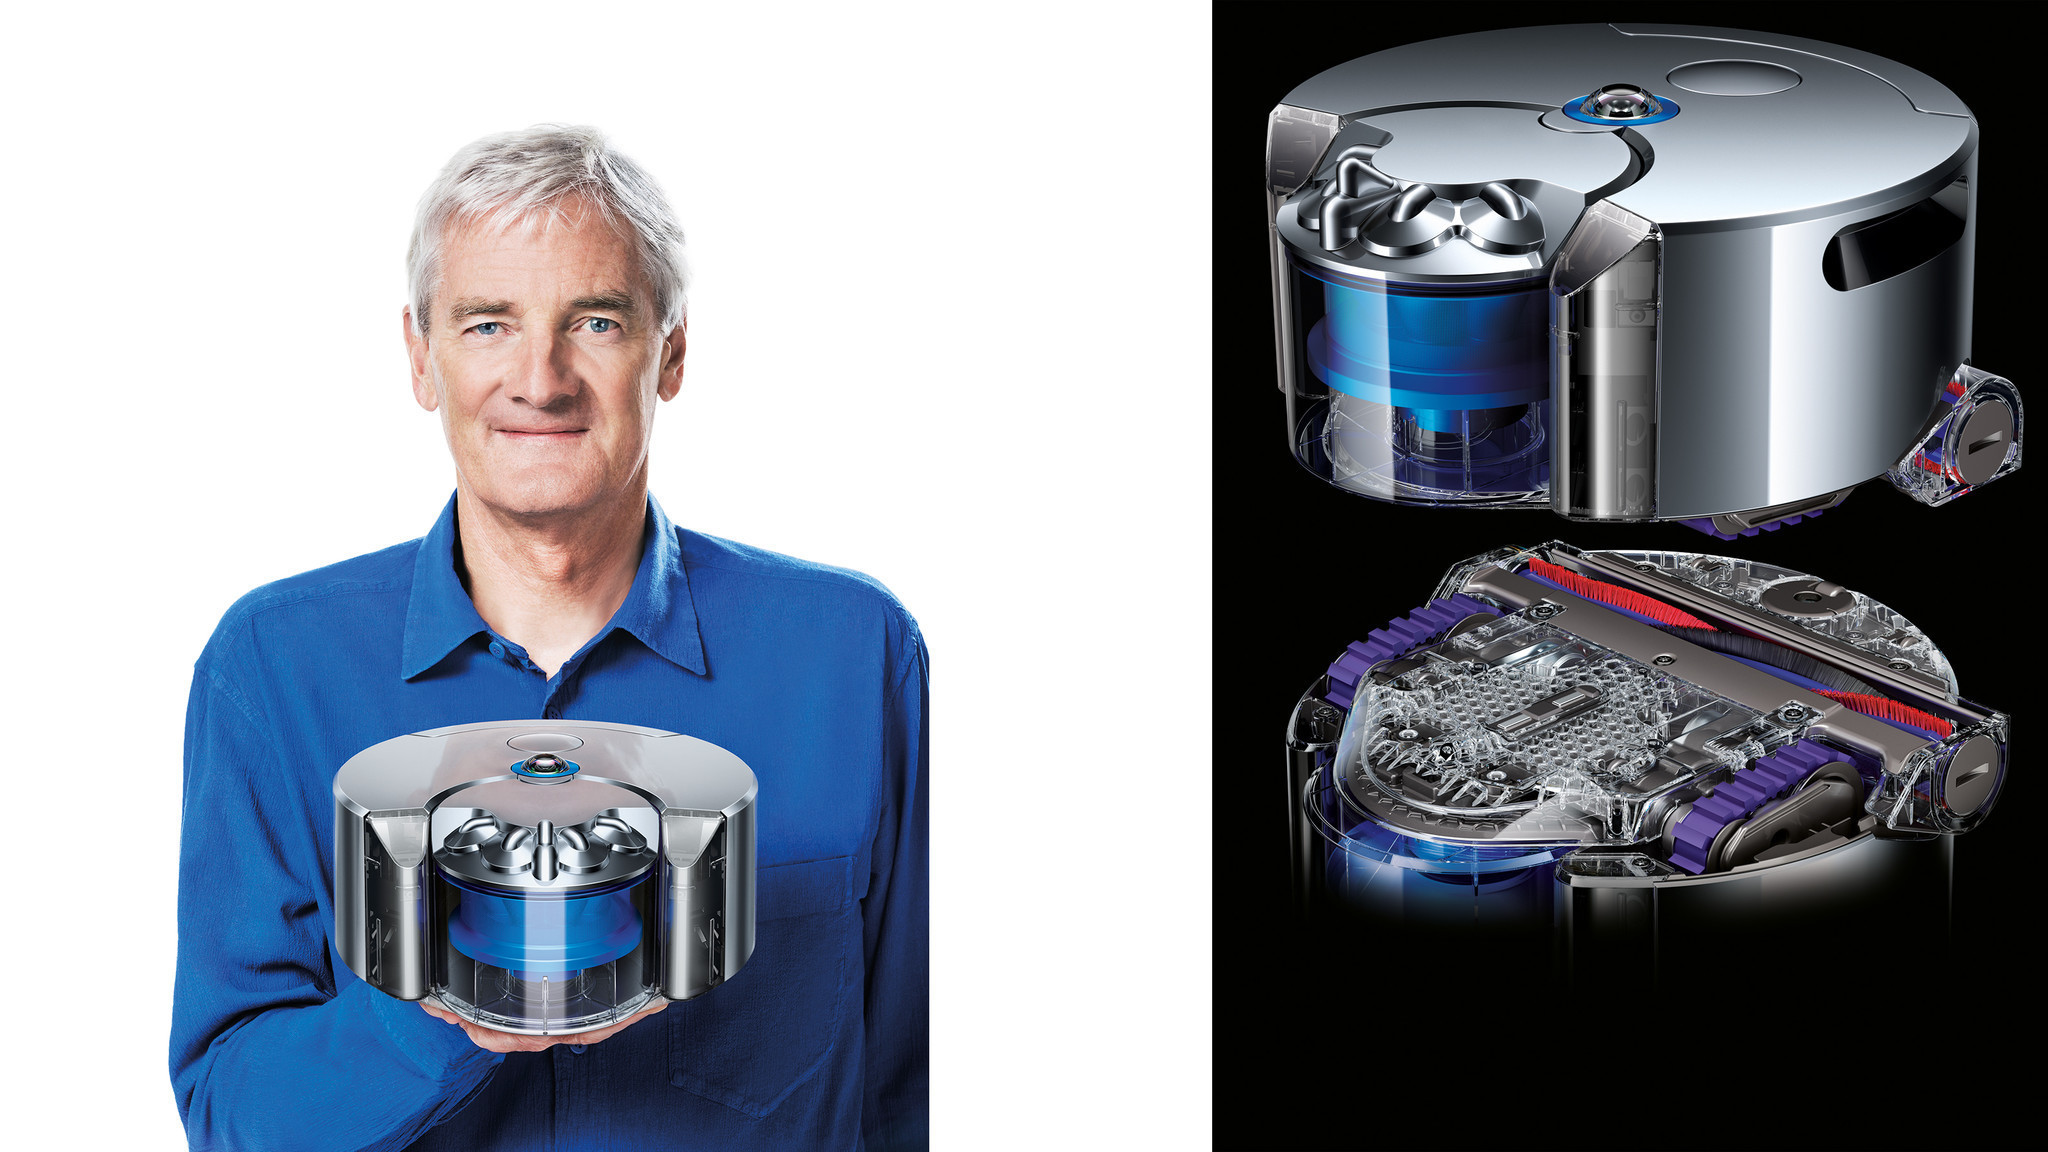 Dyson unveils '360 Eye,' a robot vacuum cleaner - Chicago